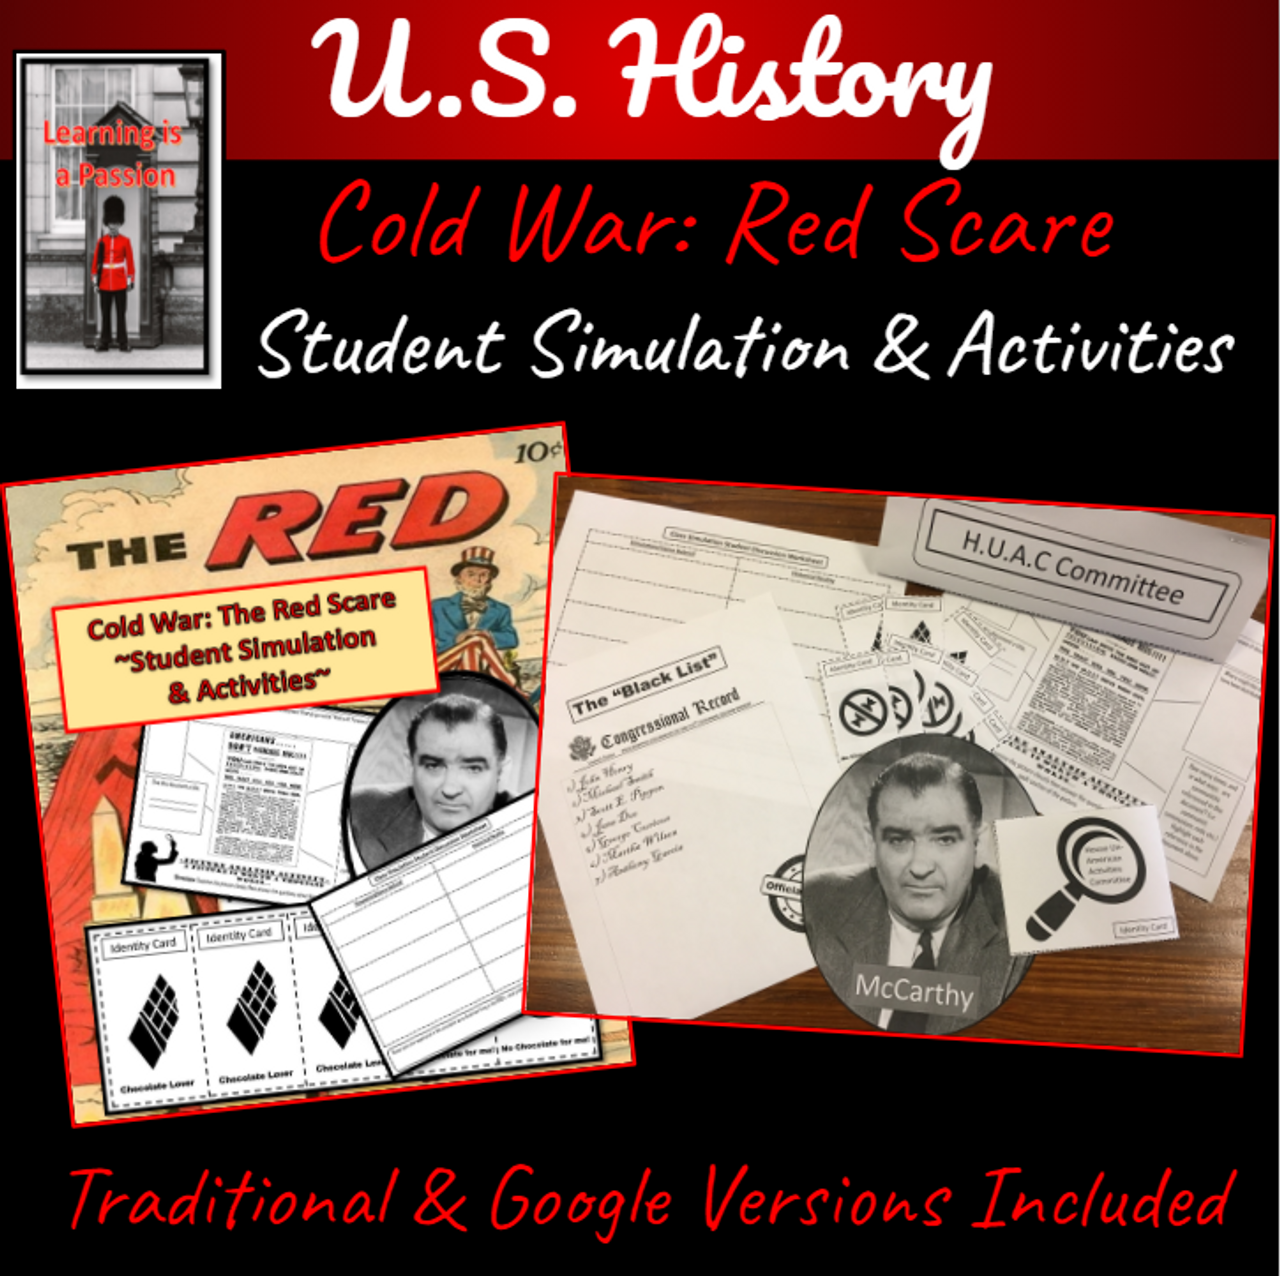 Cold War: Red Scare ~A Student Simulation & Activity~